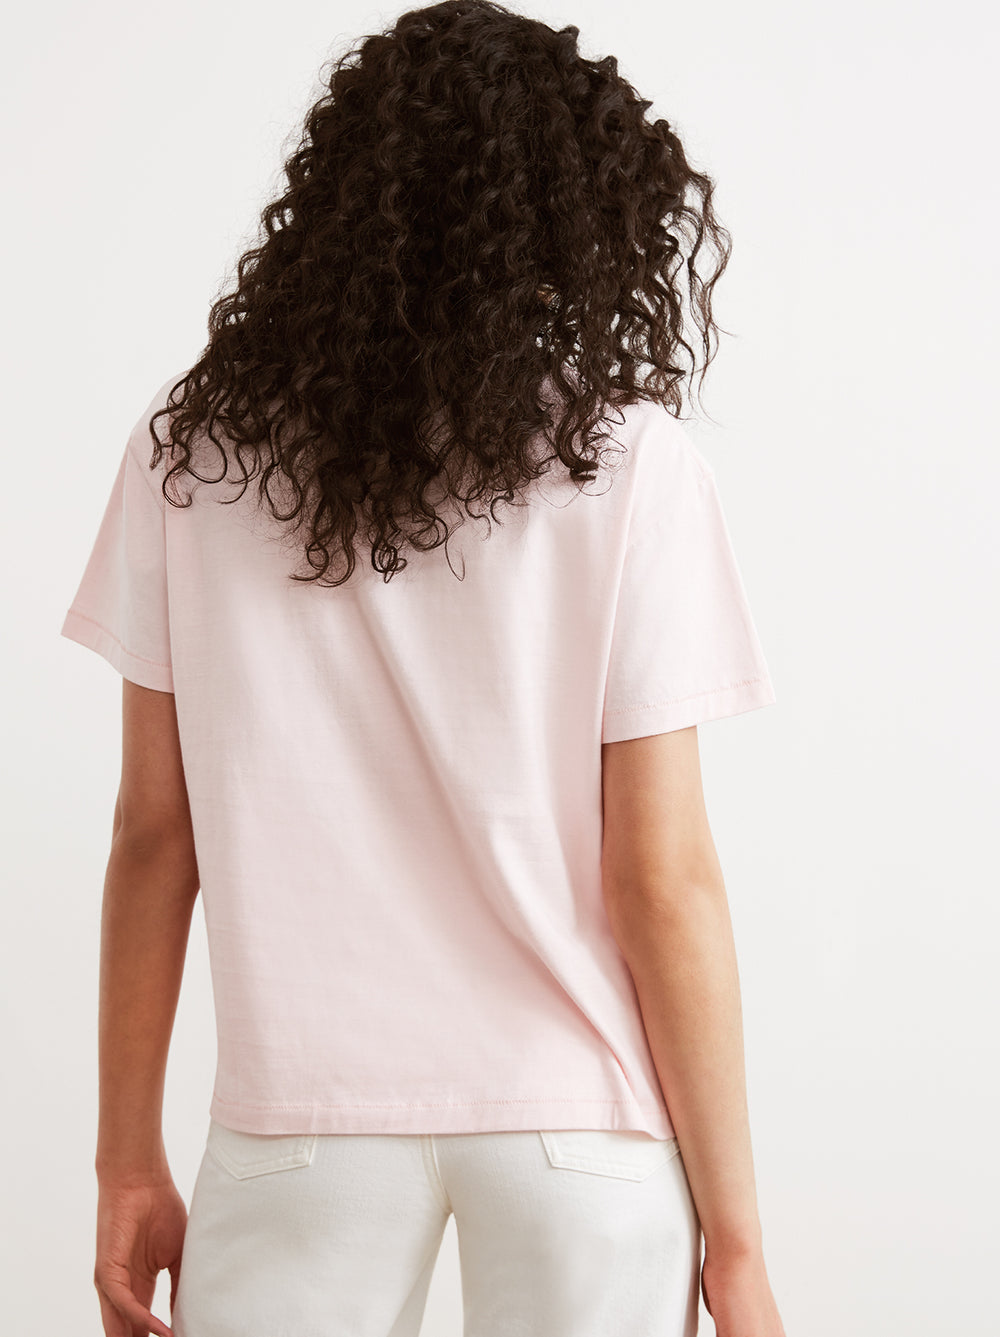 St Paul de Vence Pink Printed Cotton Crew Neck T-shirt by KITRI Studio